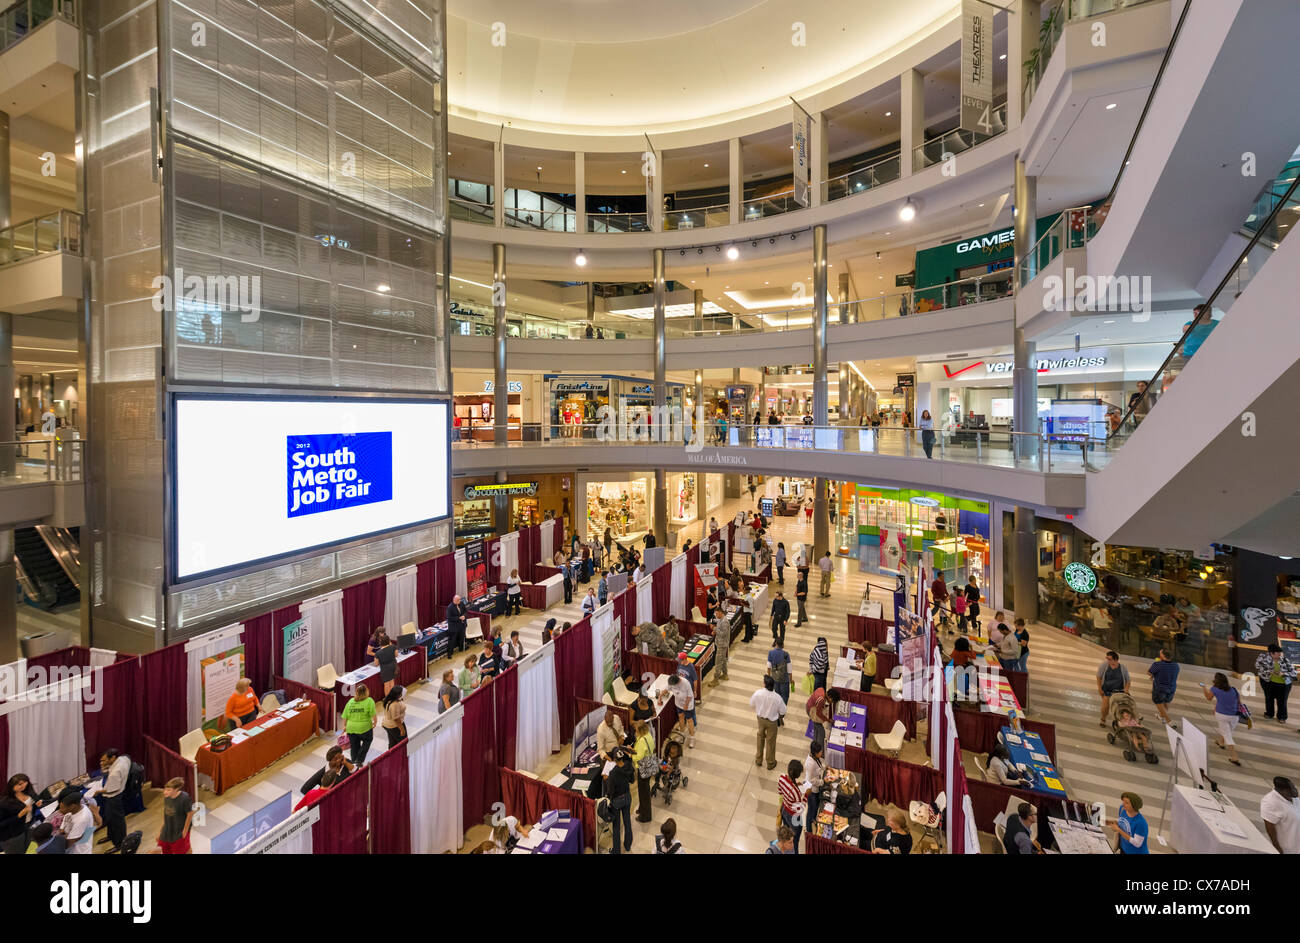 Feria de Empleo en el Mall of America, Bloomington, Minneapolis, Minnesota, EE.UU. Imagen De Stock